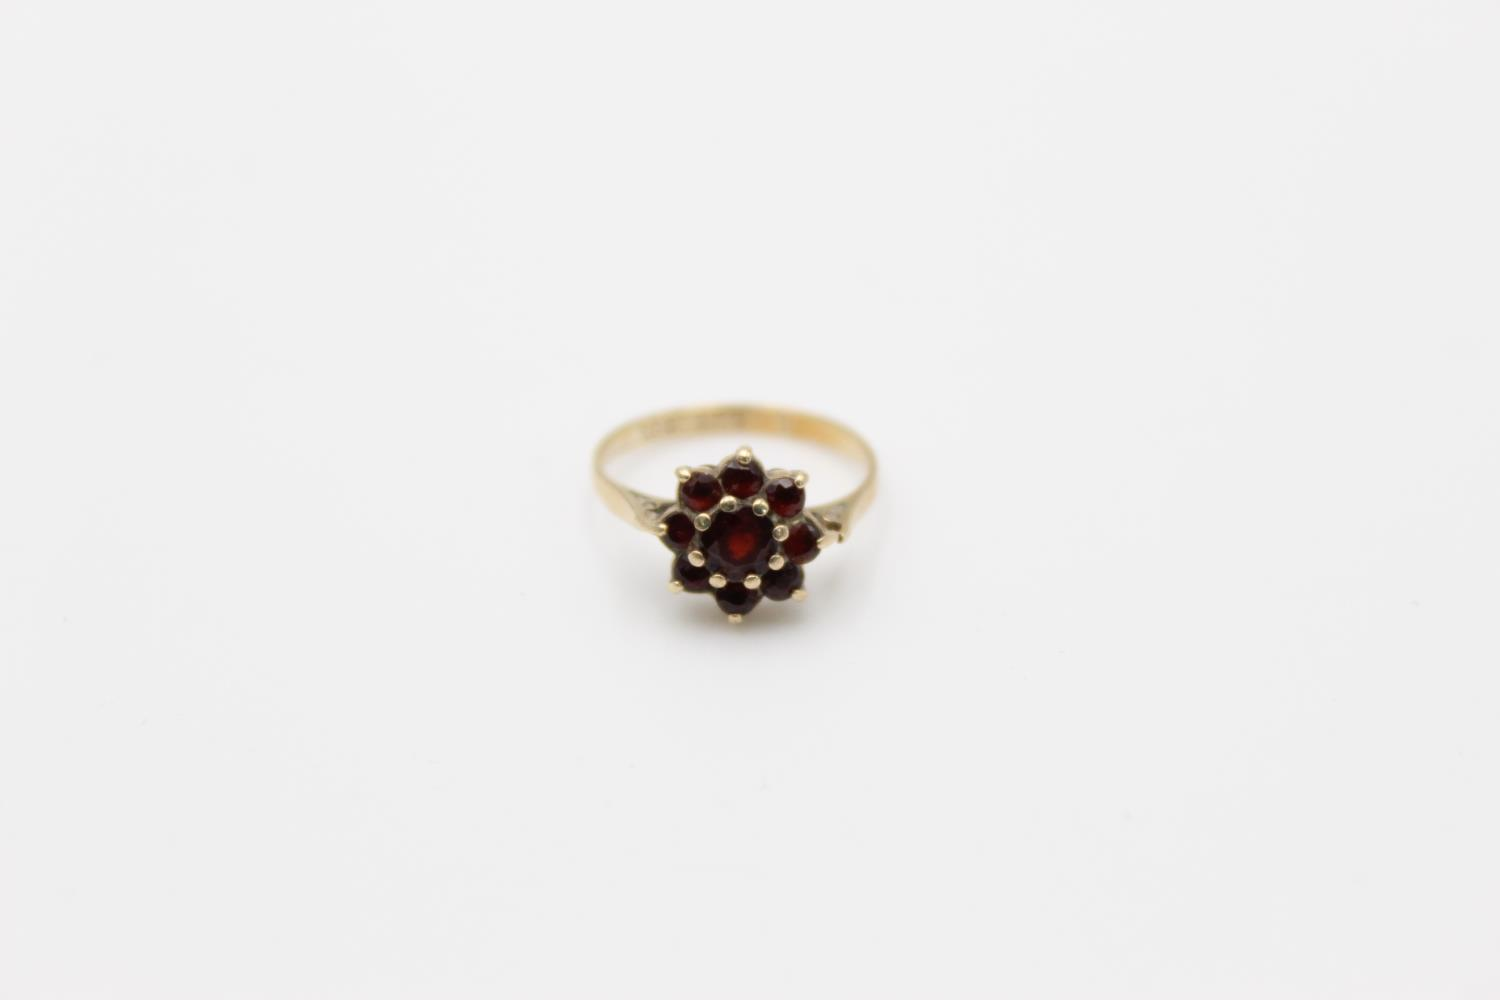 2 x 9ct gold garnet rings inc 7 stone, cluster 4.1g Size O & H - Image 2 of 10